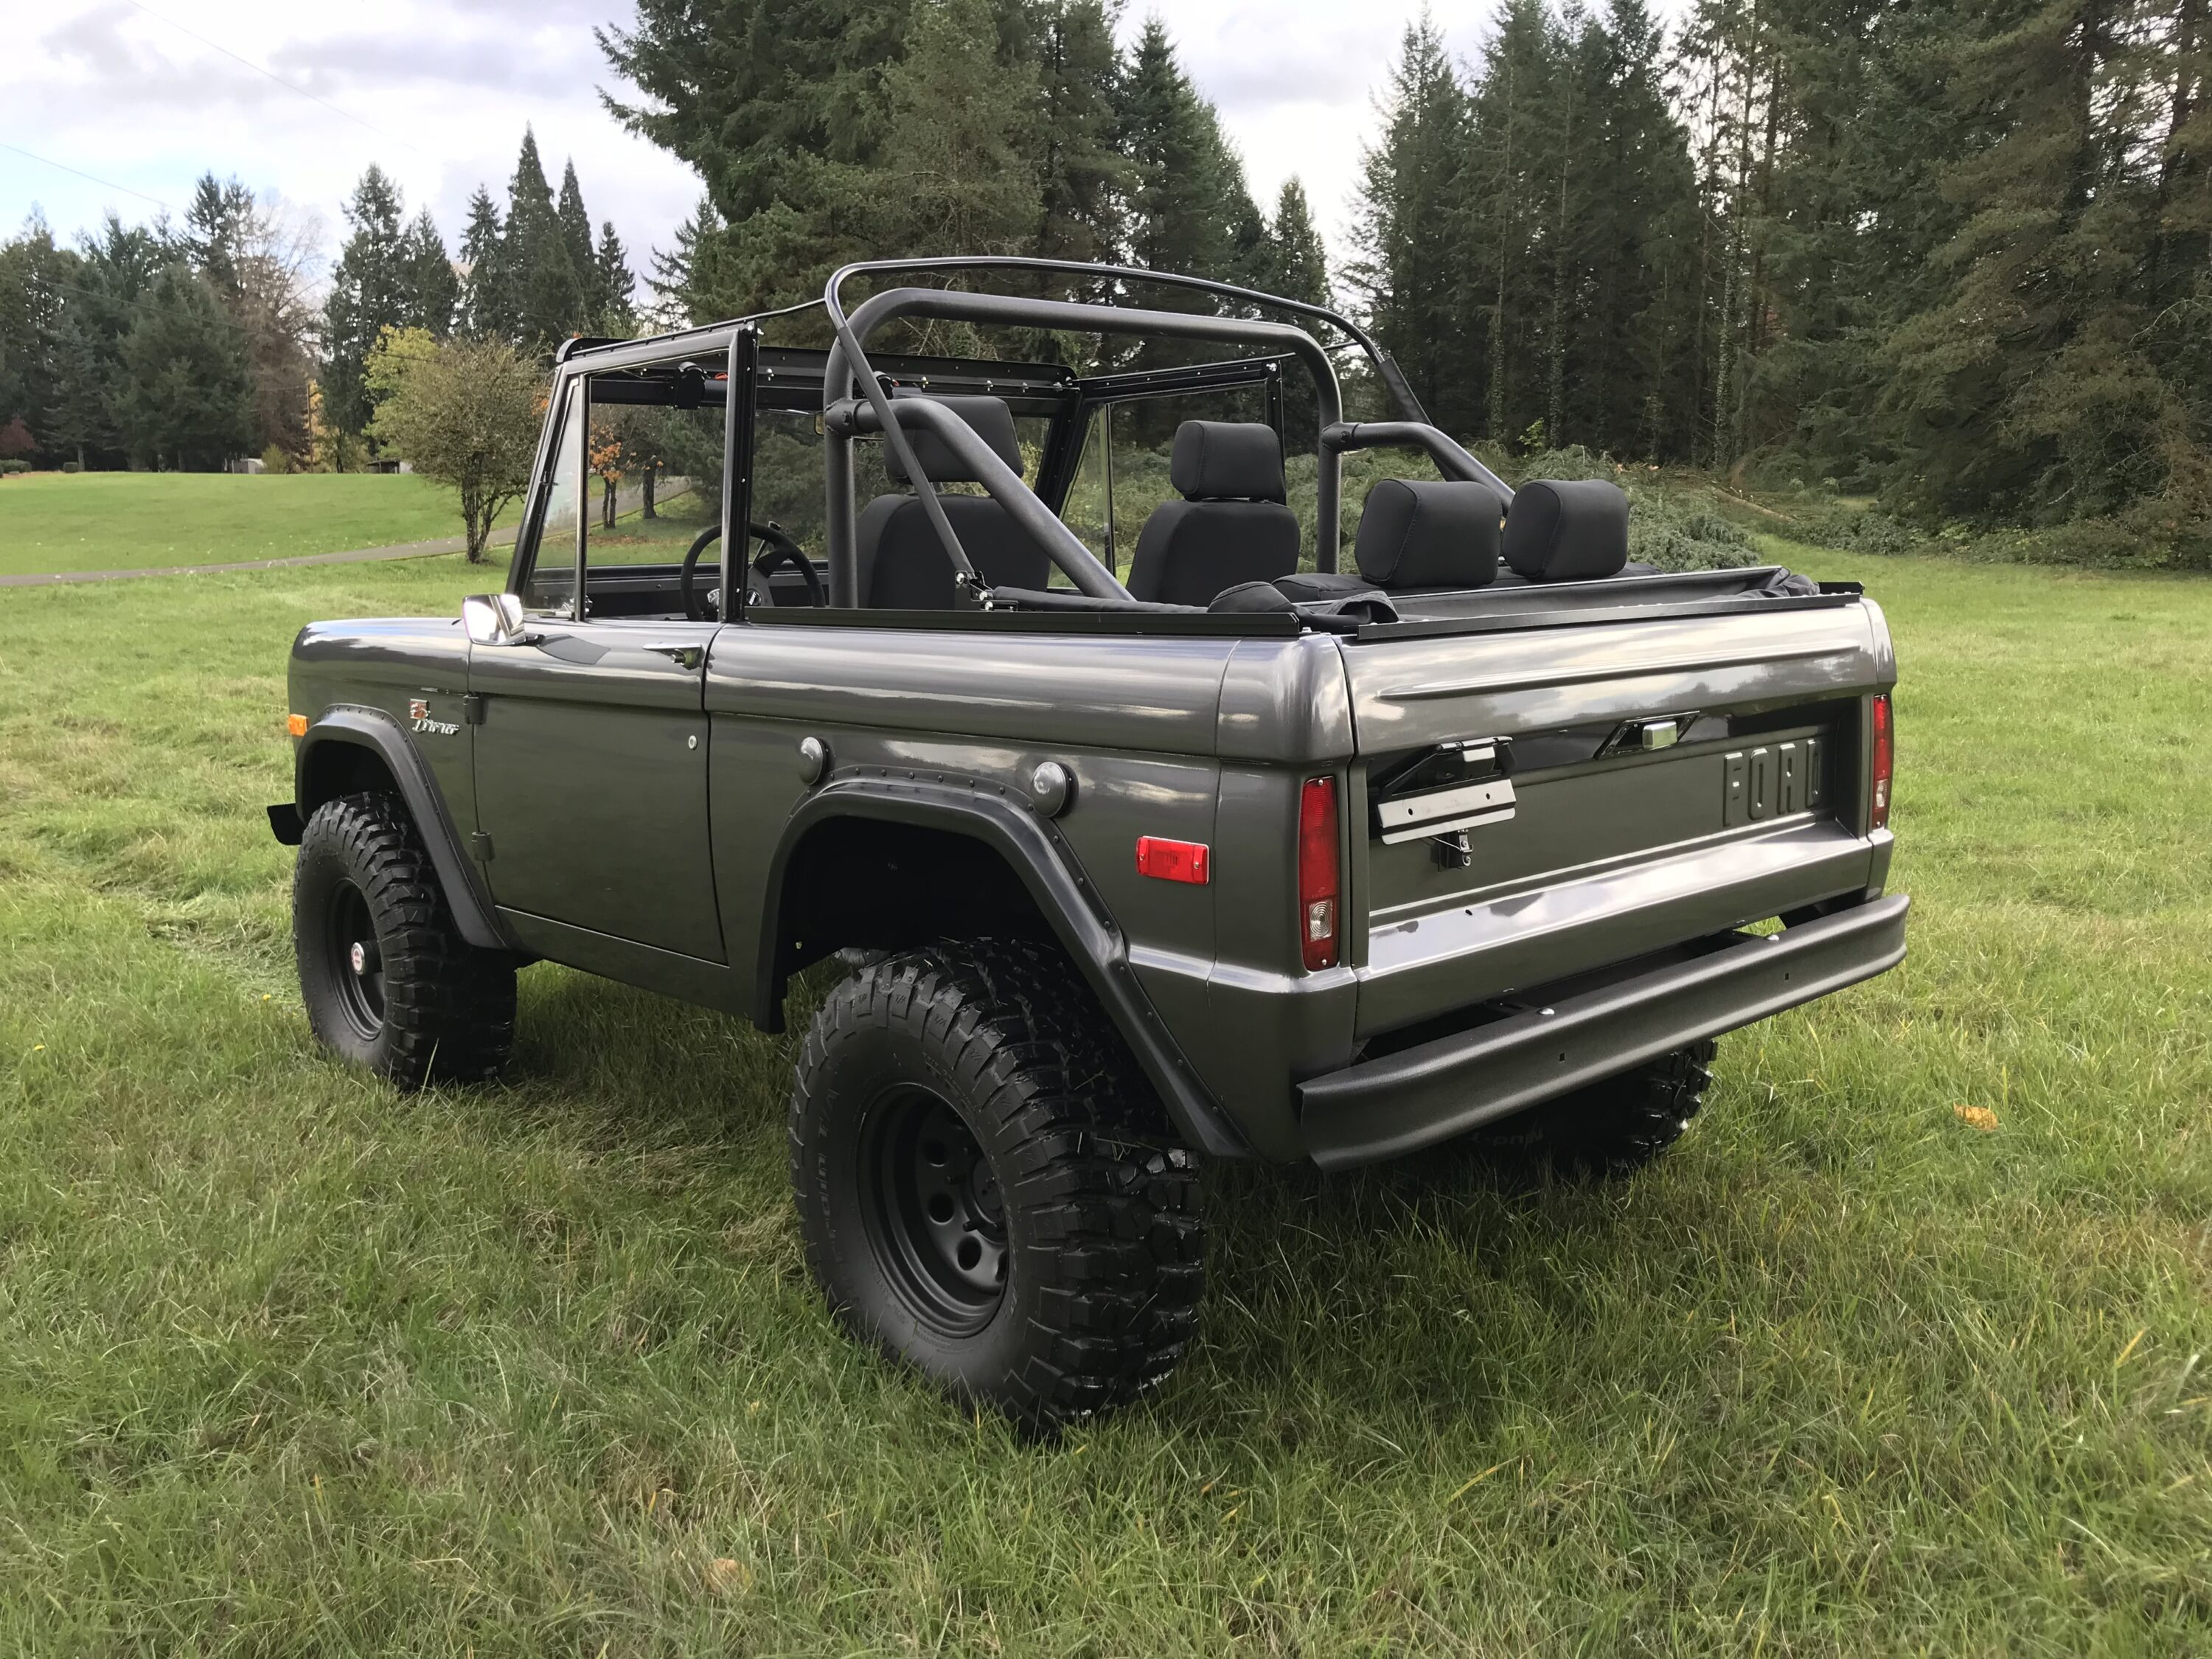 1973 Ford Bronco Charcoal Grey